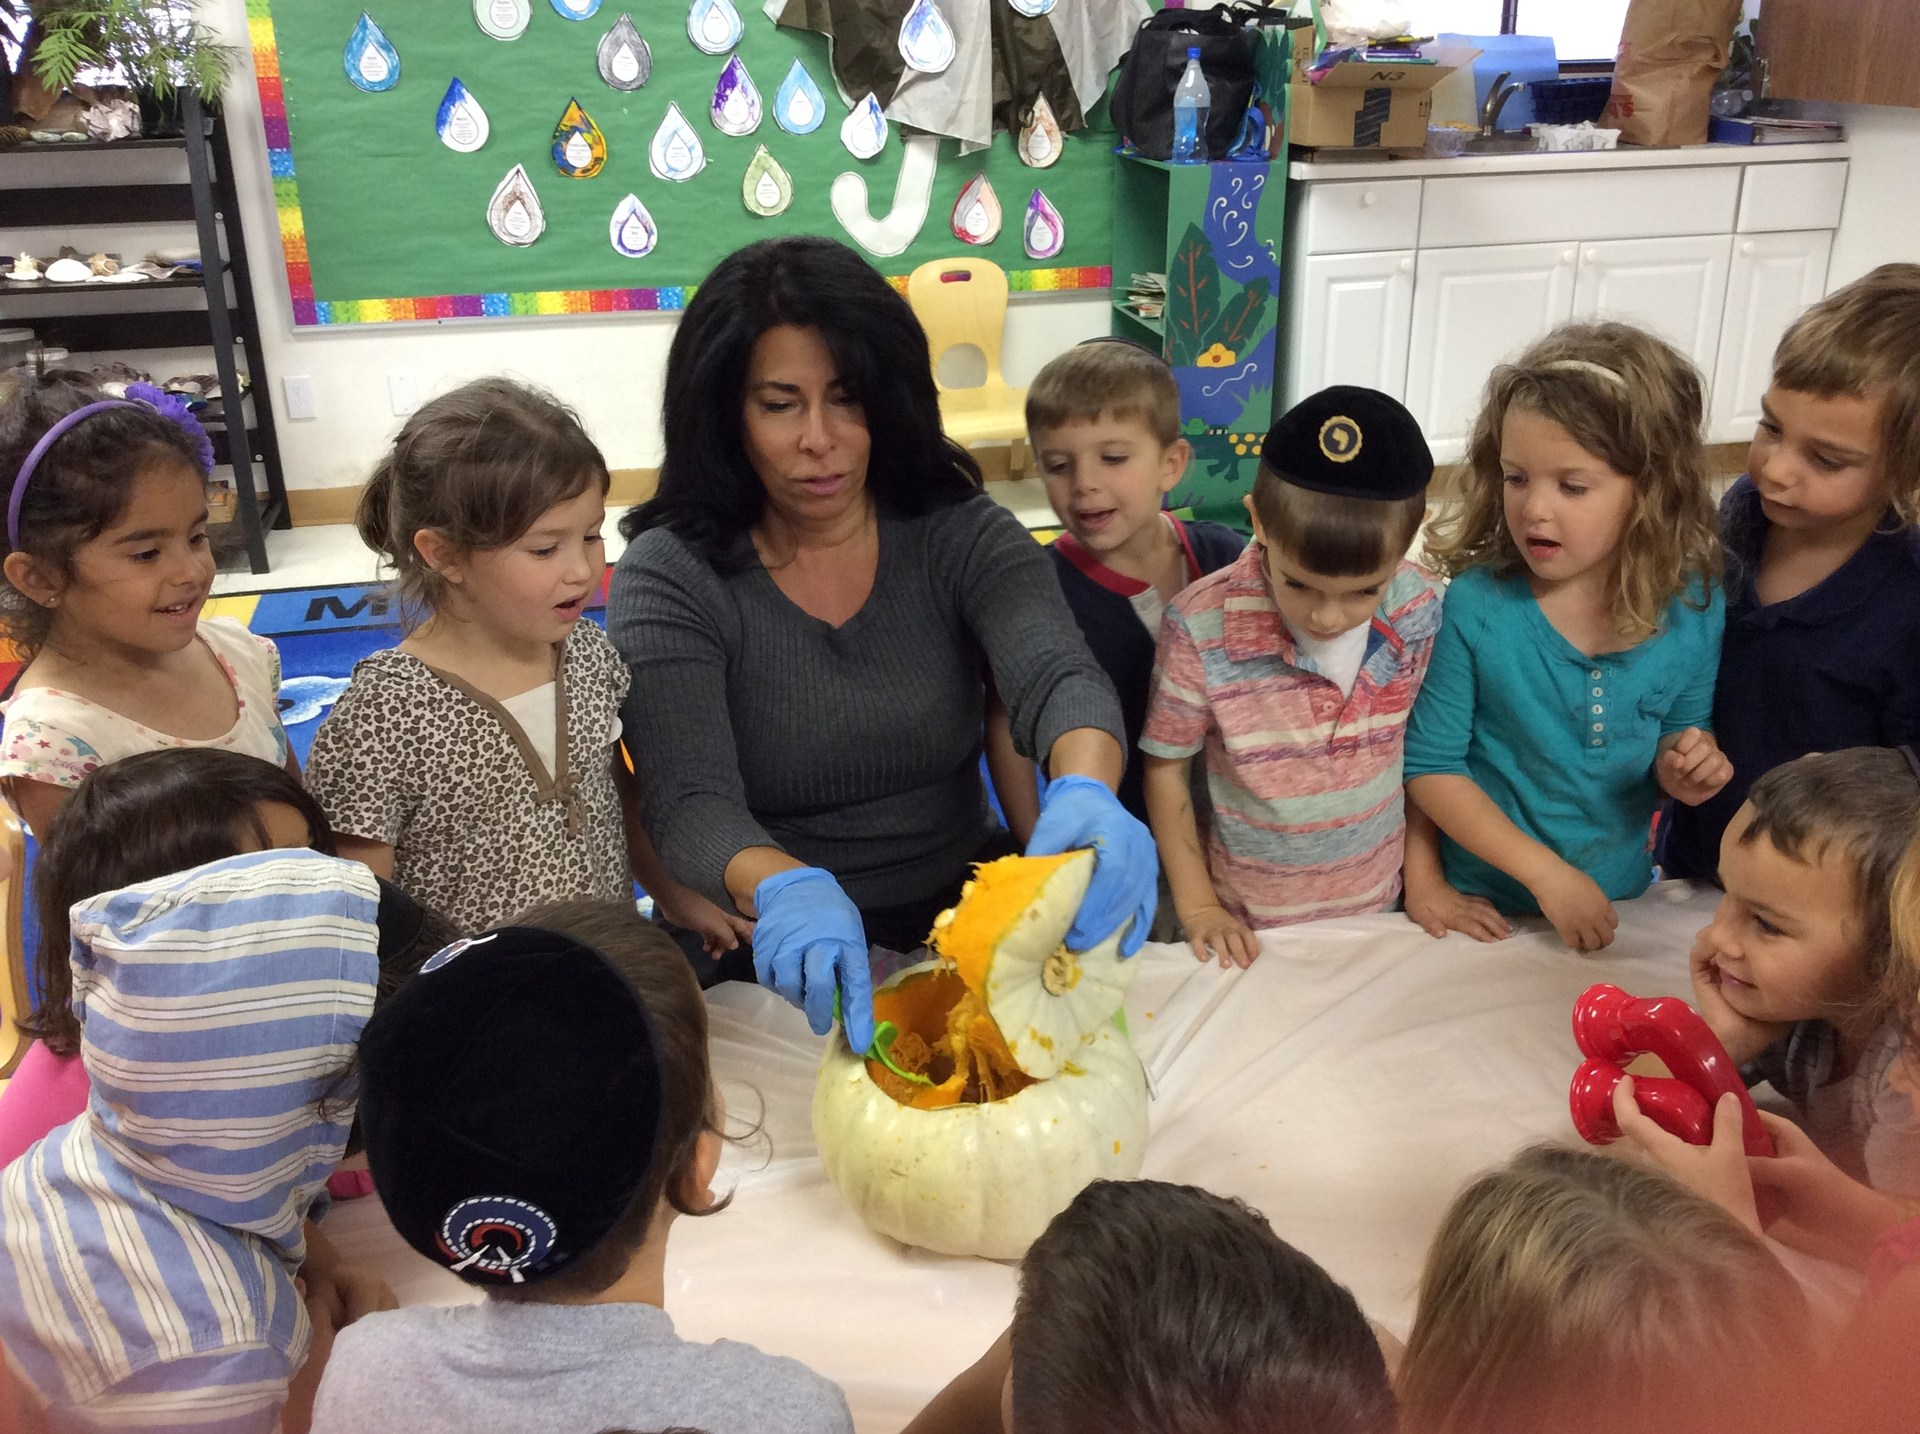 teacher carving a pumpkin with kids watching